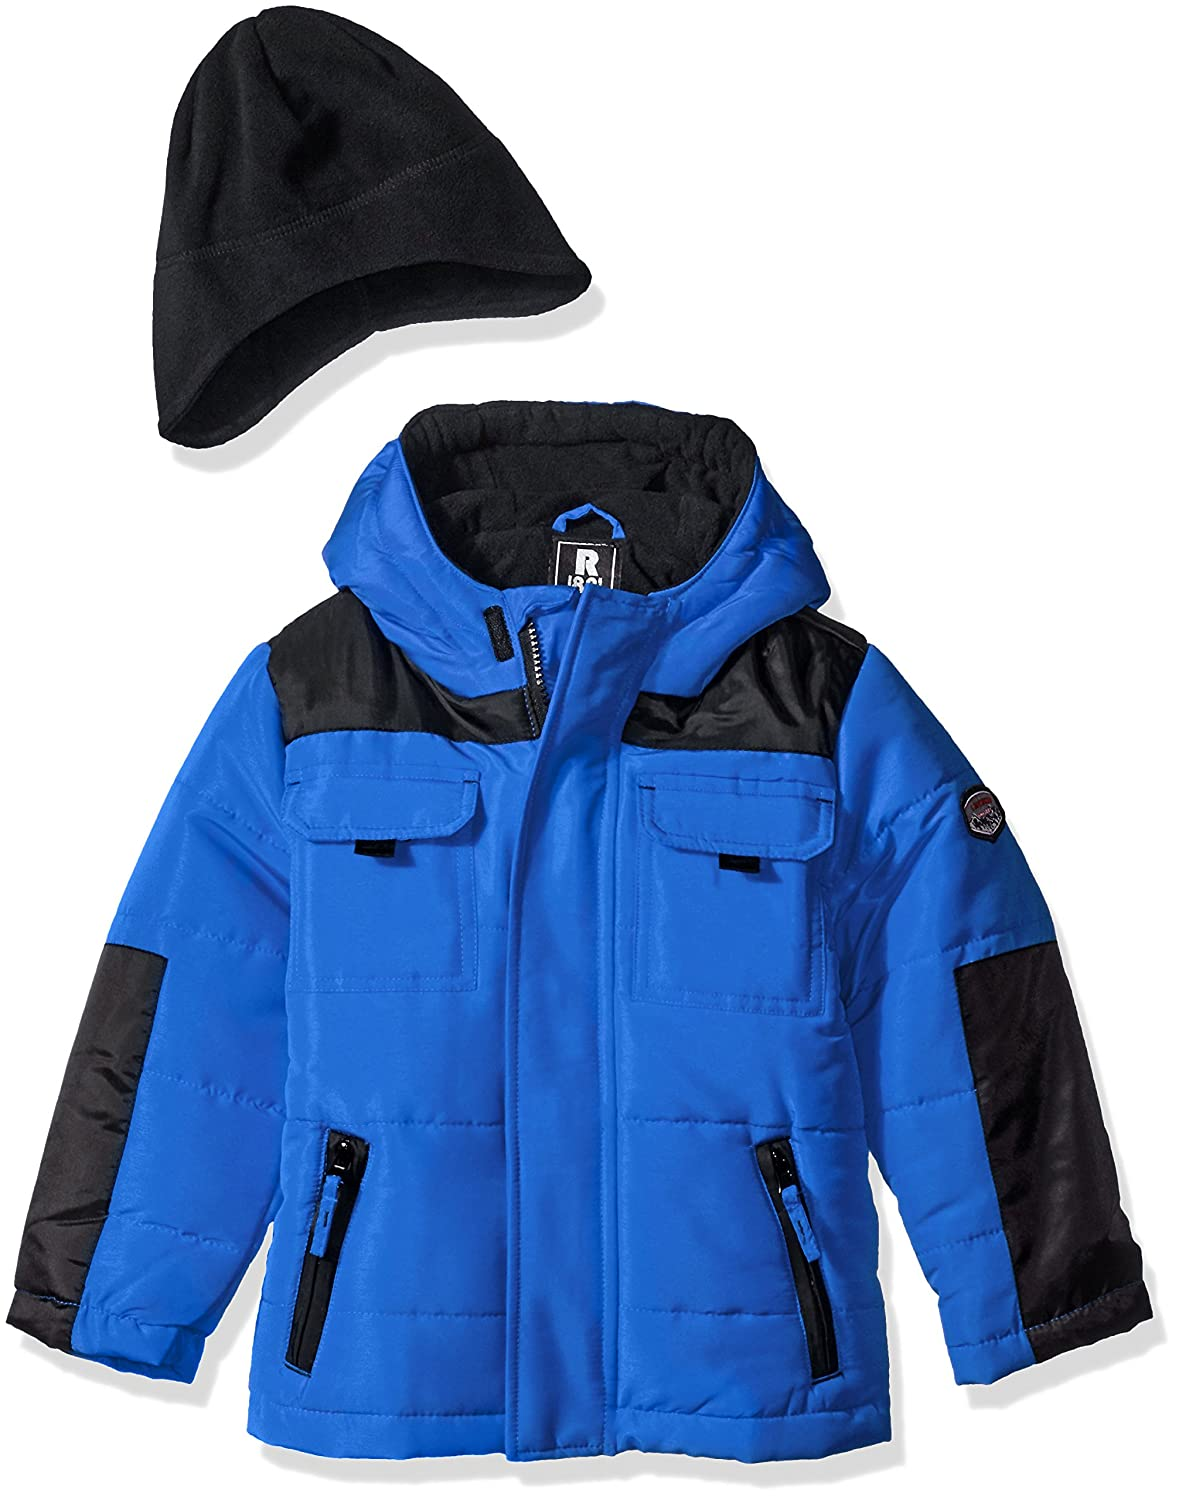 Rothschild boys 2 Tone Bubble Jacket With Hat Cobalt (L) 6X 46351-F6